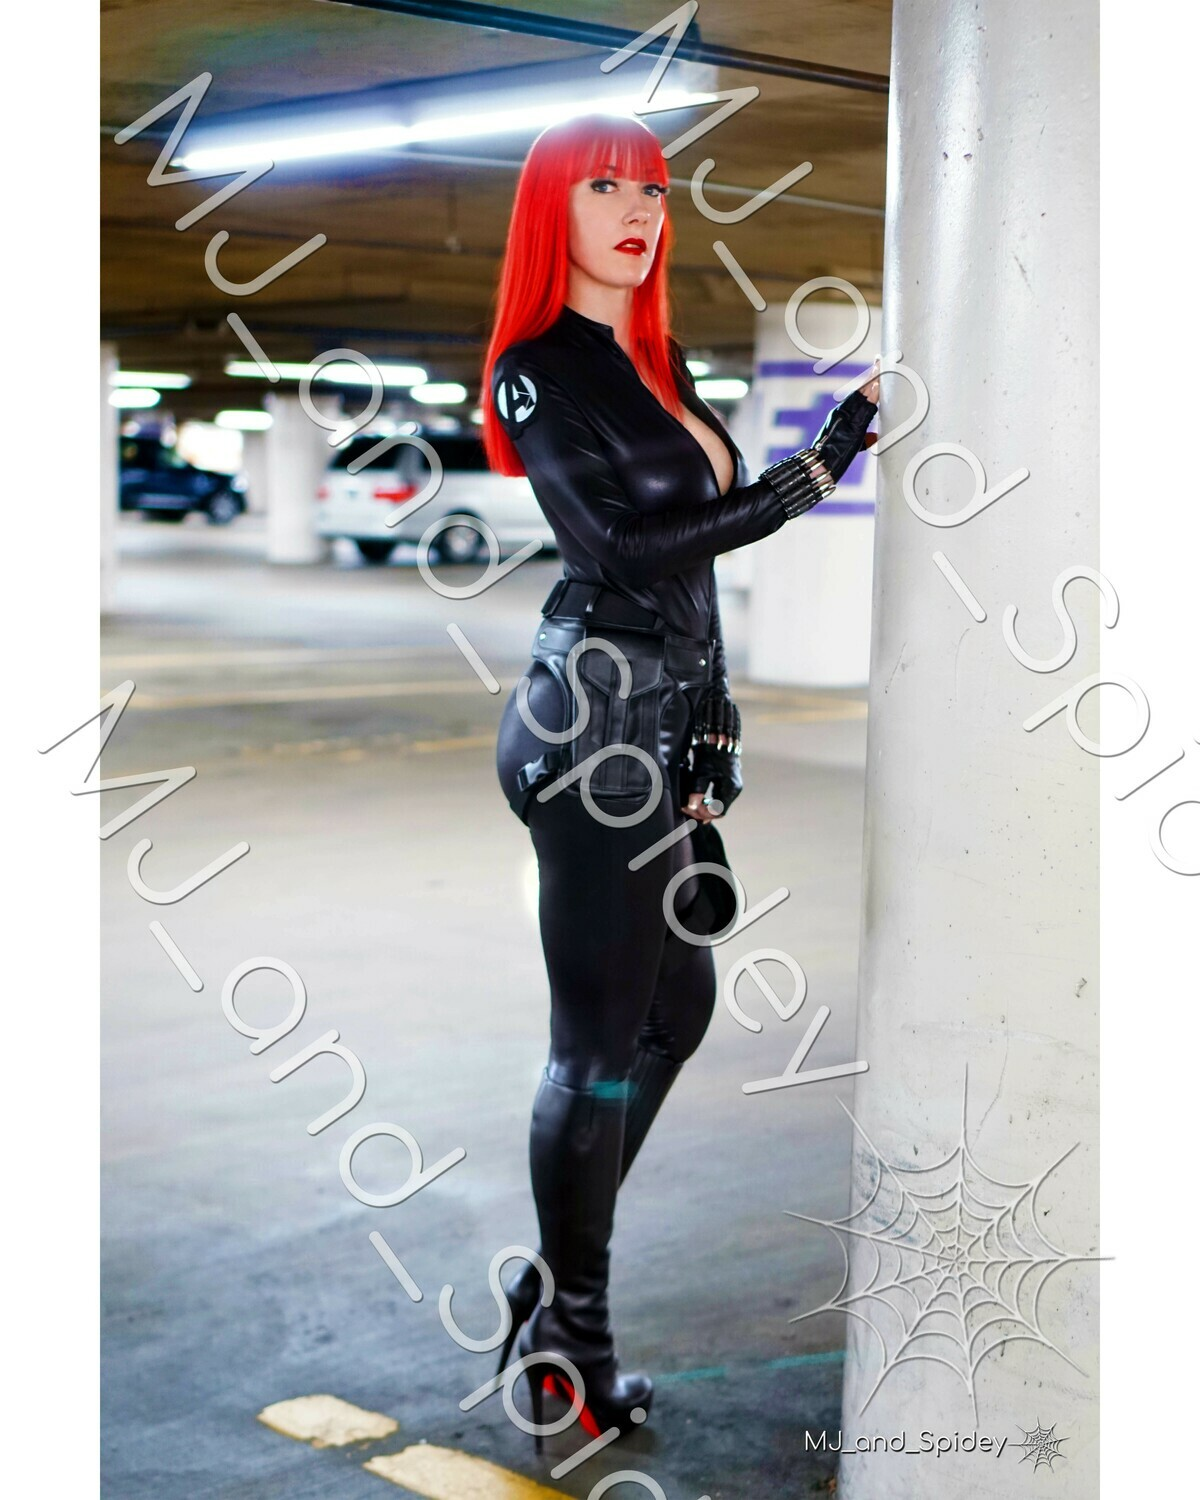 Marvel - Avengers - Black Widow No. 5 - 8x10 Cosplay Print (@MJ_and_Spidey, MJ and Spidey, Comics)